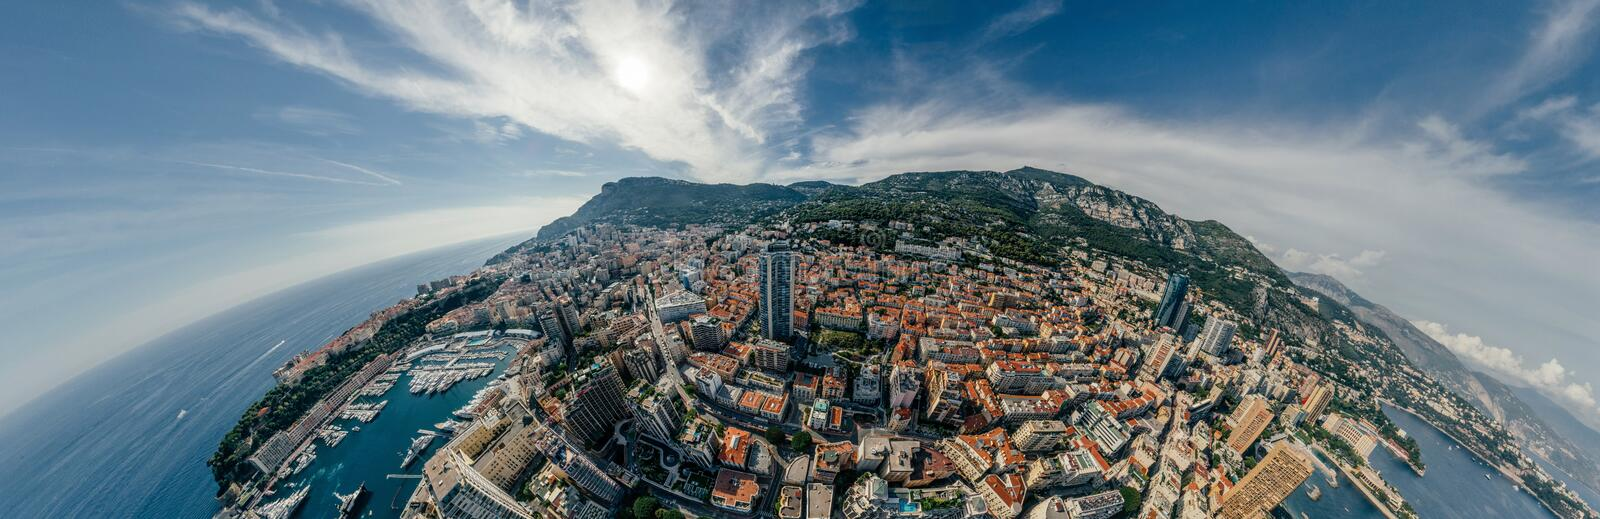 Mountains in Monaco Monte-Carlo city riviera Drone summer photo Air 360 vr virtual reality drone panorama. Sphere Panorama Summer Sea Coastline in Monaco Air royalty free stock image